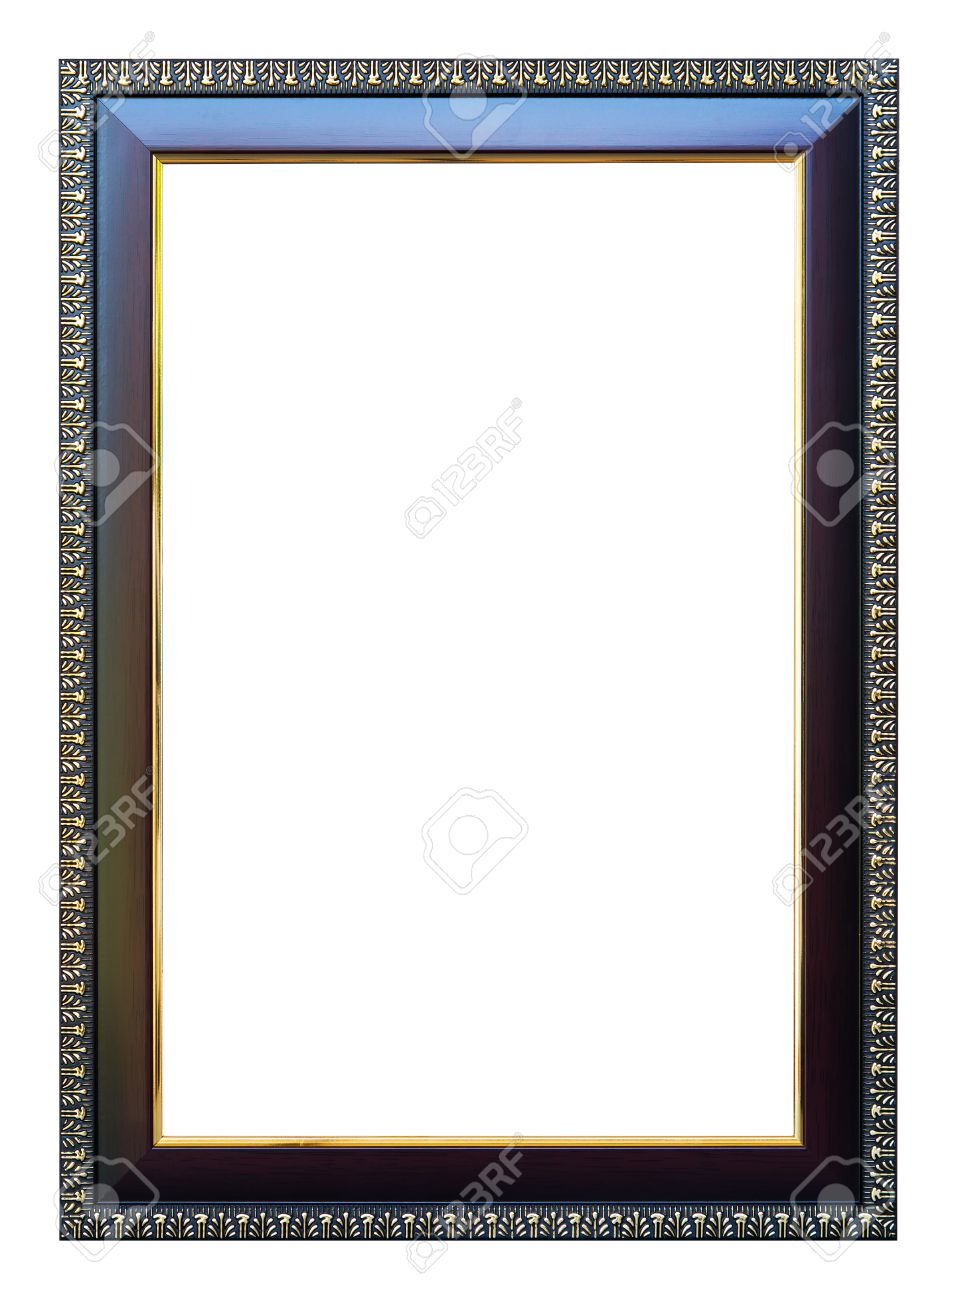 Frame Size 8 X 12 Color Dark Oak With Gold Trim Isolated On White